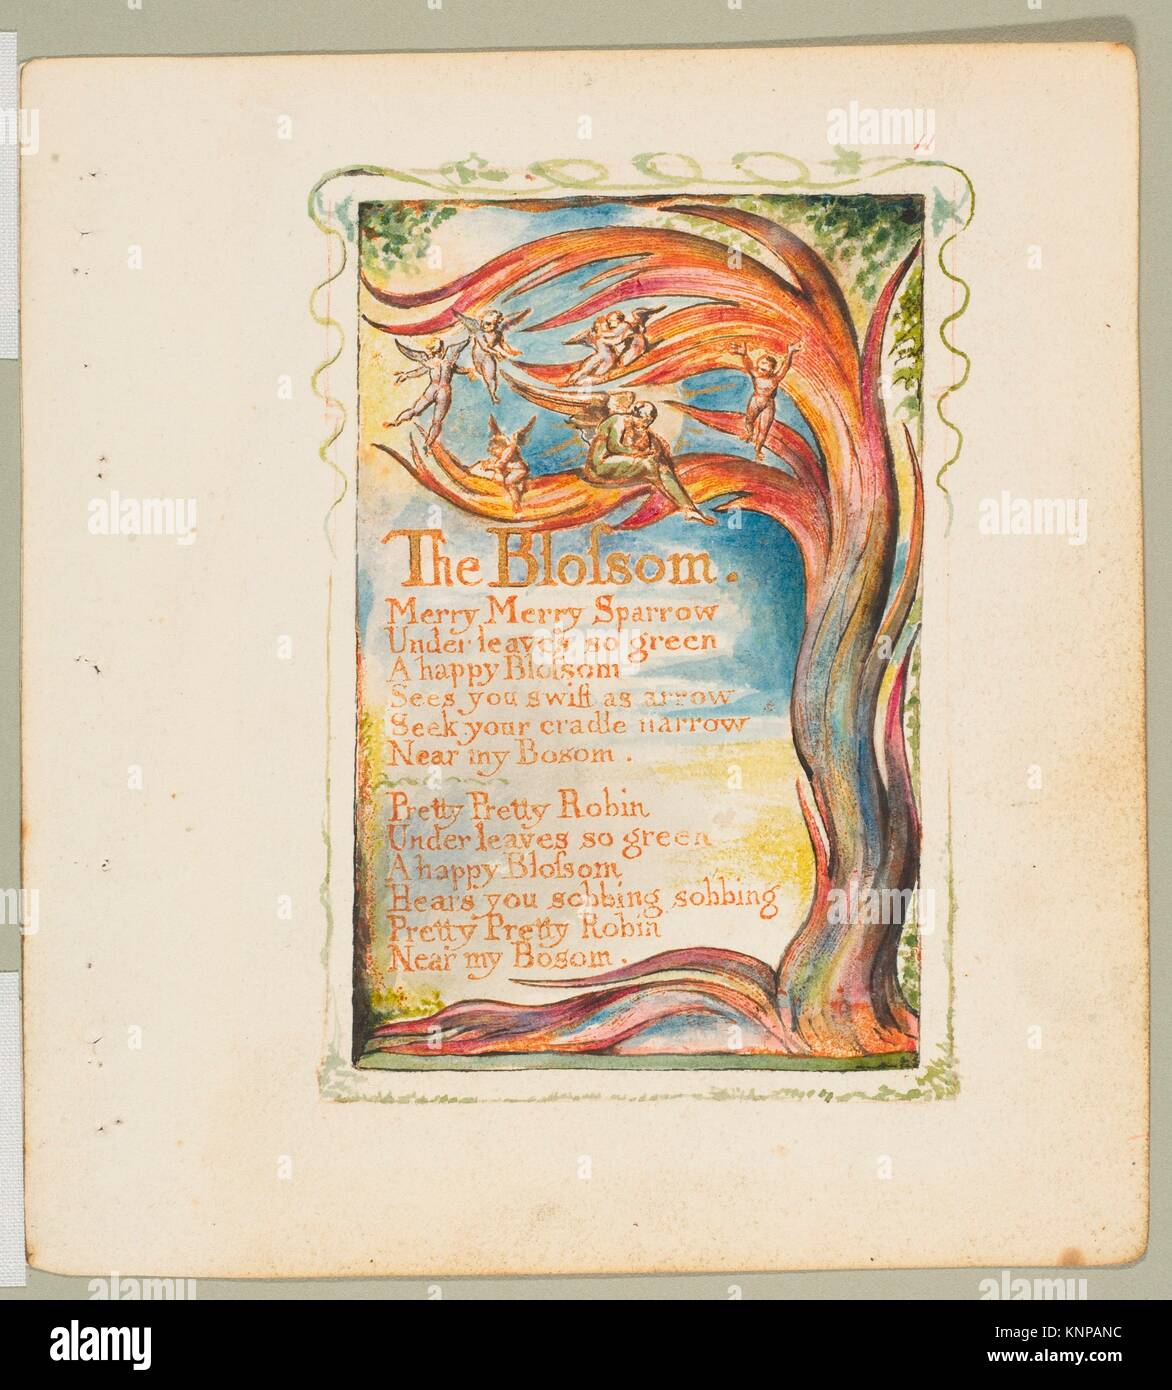 Songs of Innocence and of Experience: The Blossom: Merry Merry Stock ...